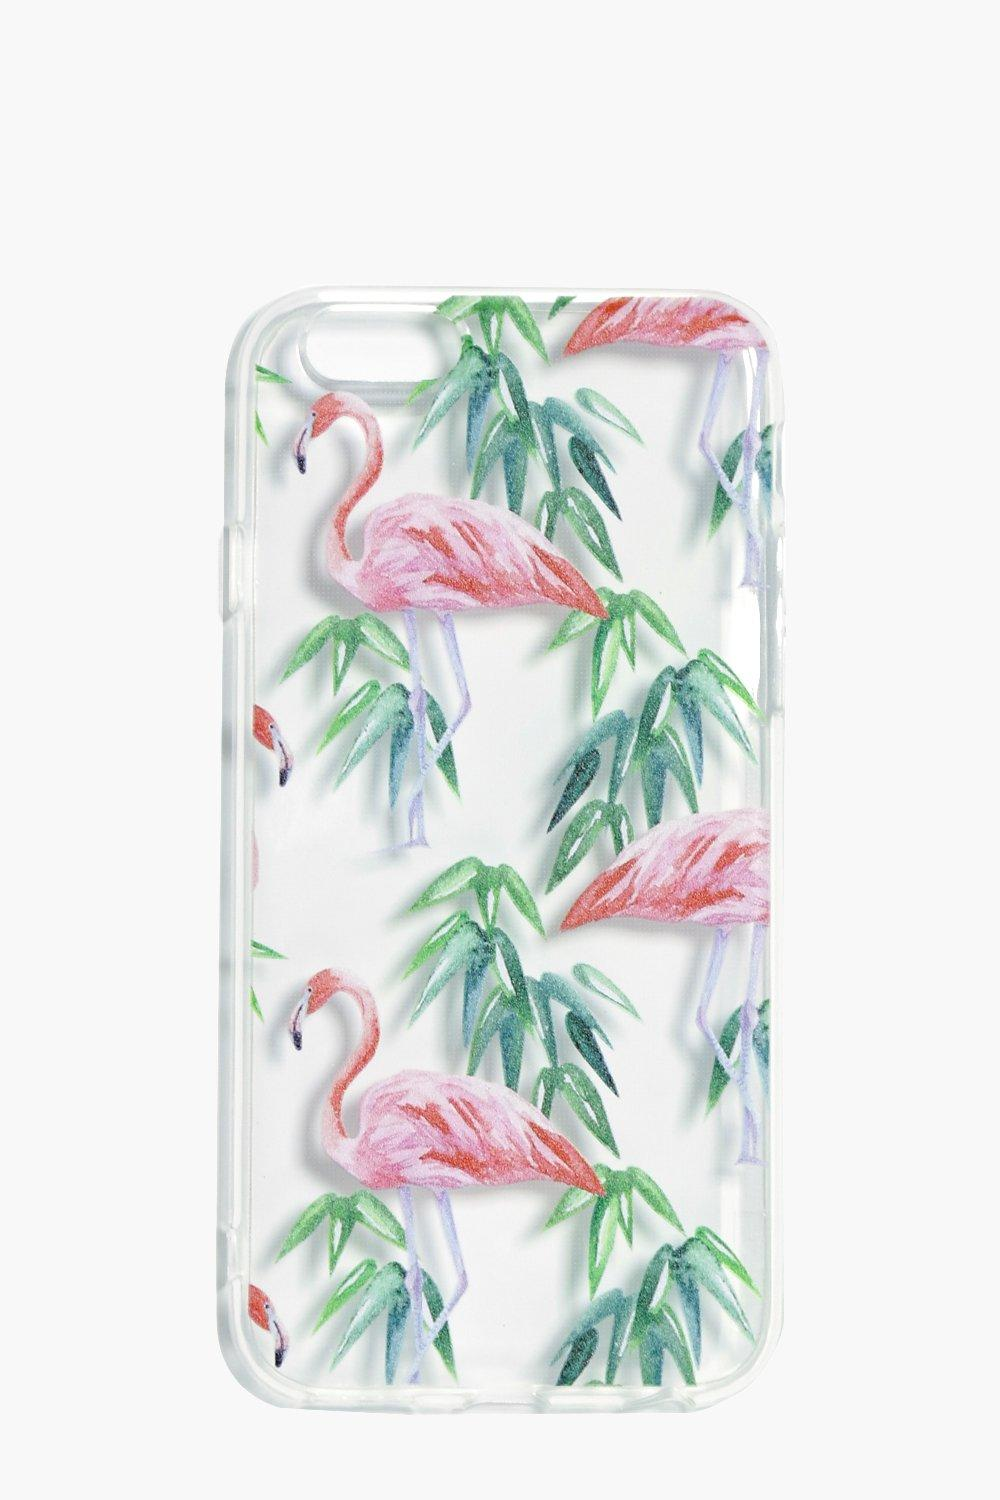 & Greenery iPhone 6 Case - clear - Flamingo & Gree